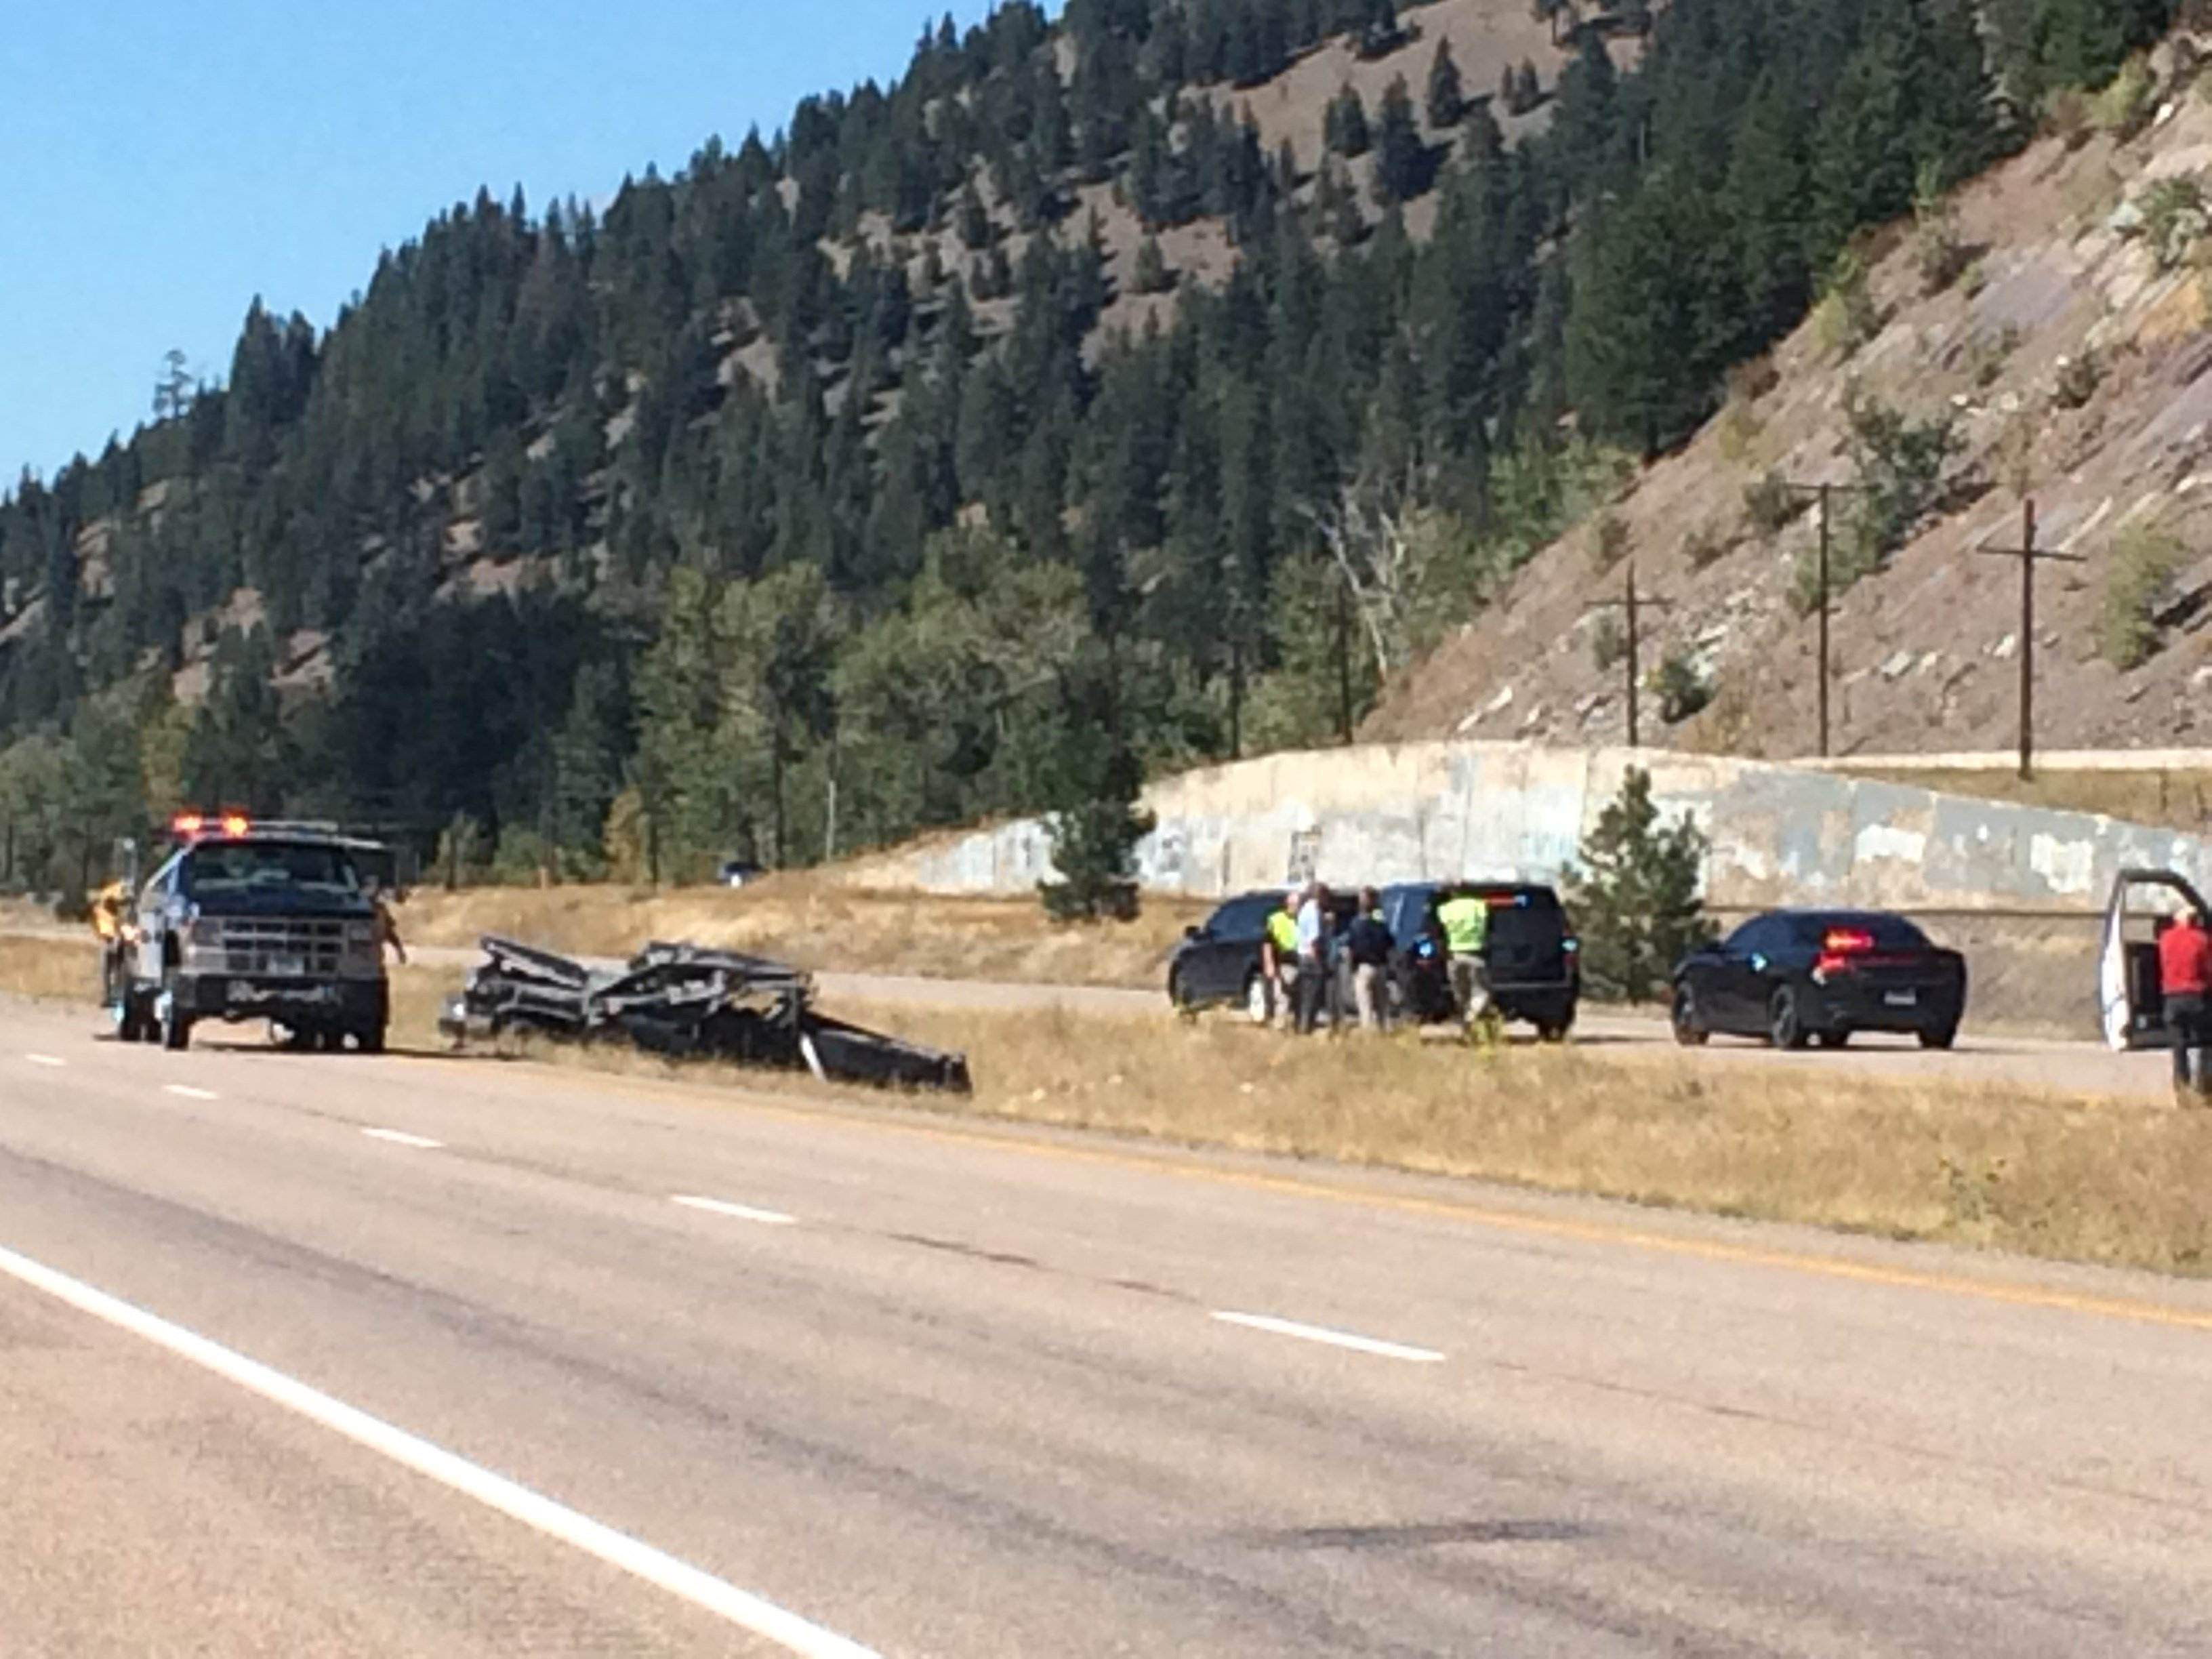 Montana missoula county clinton - Missoula County Sheriff S Department Confirms A Fatal Car Crash On I 90 Has Left At Least One Deceased This Coming Only One Day After A Crash In The Same